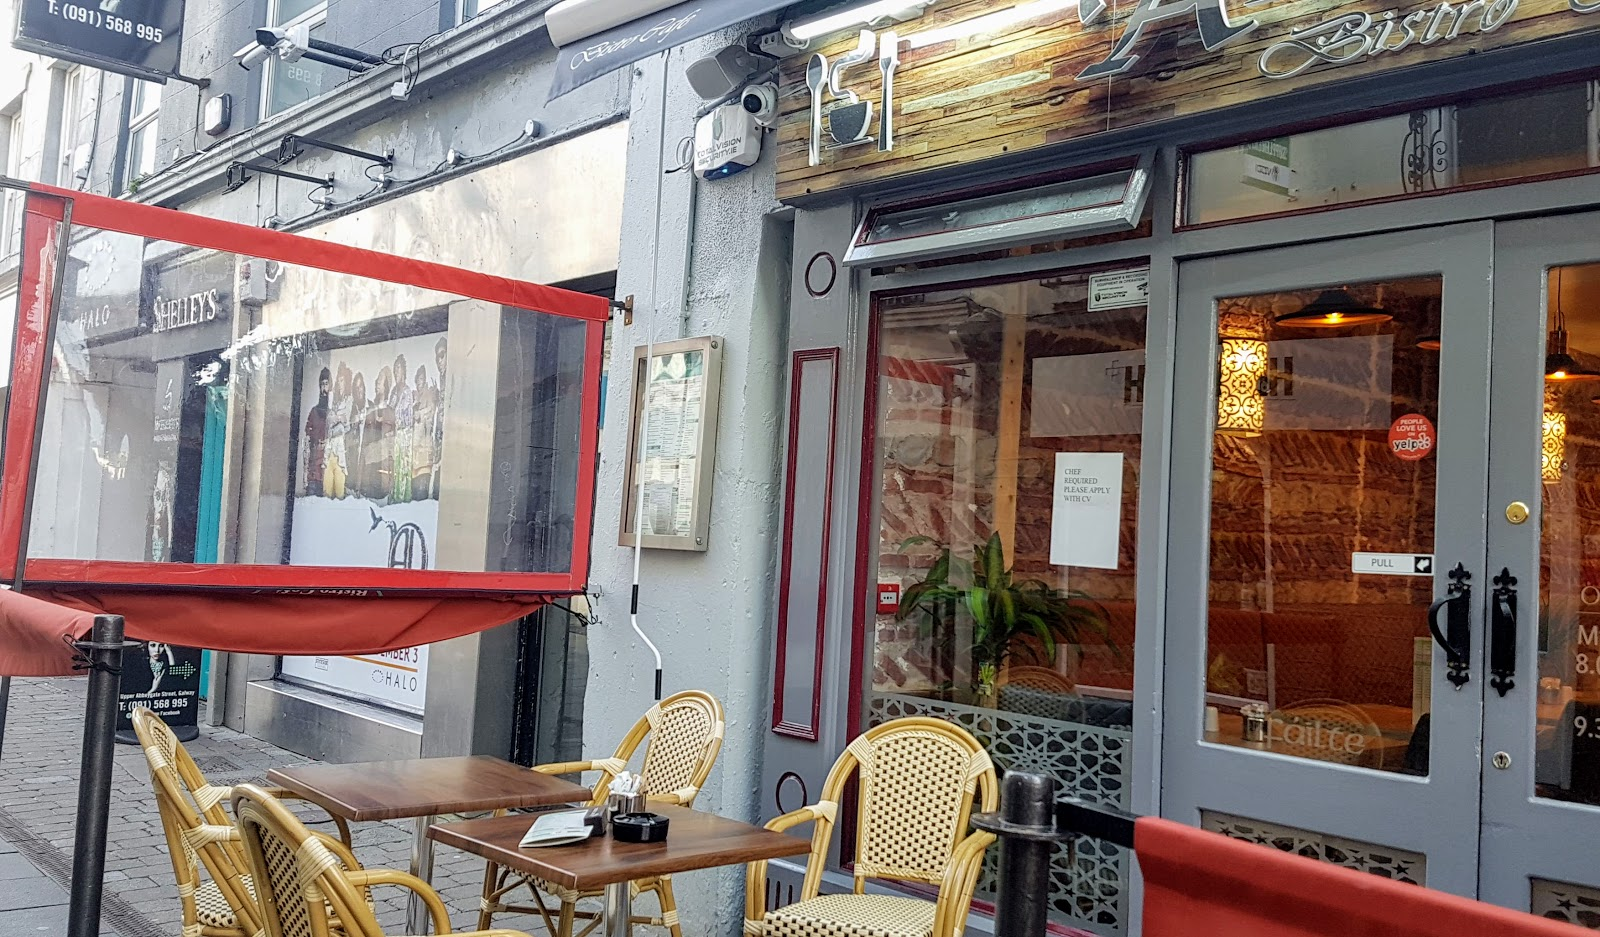 Middle-eastern cafe bistro in galway city - outdoor tables with ashtrays, wicker-work chairs, orange canvas partitions with see-through window canvas.